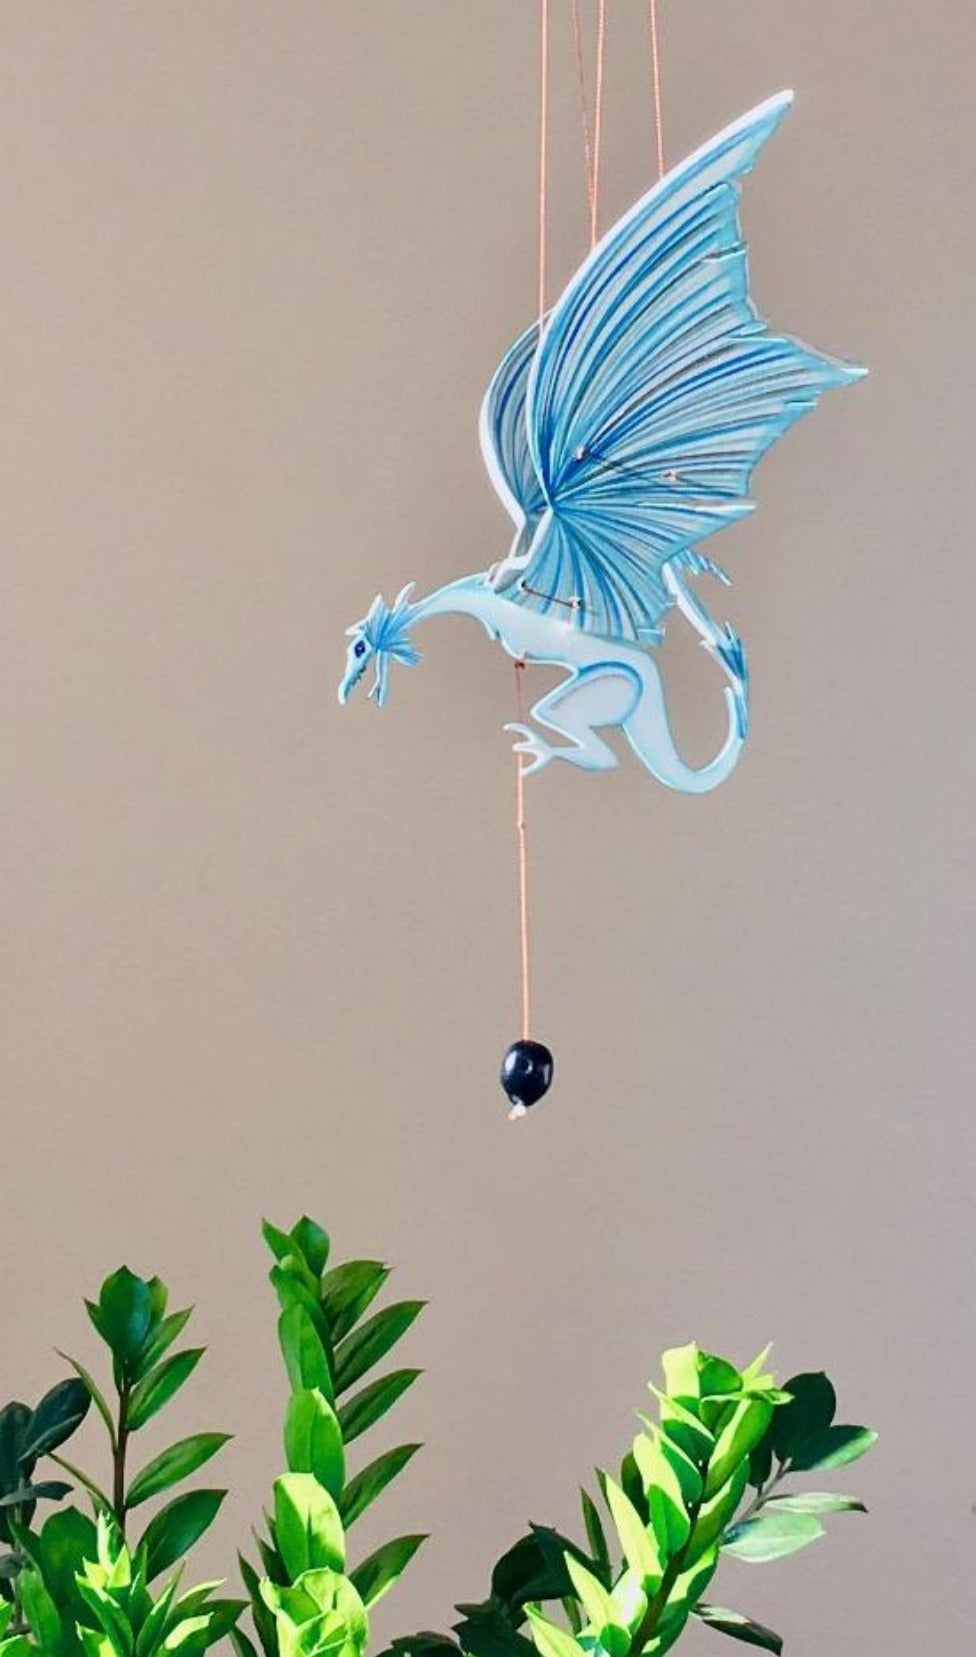 Ice Dragon Flying Mobile. Handmade & Hand painted in Colombia. Ethical Home Decor. Gift for Game of Thrones Fans.